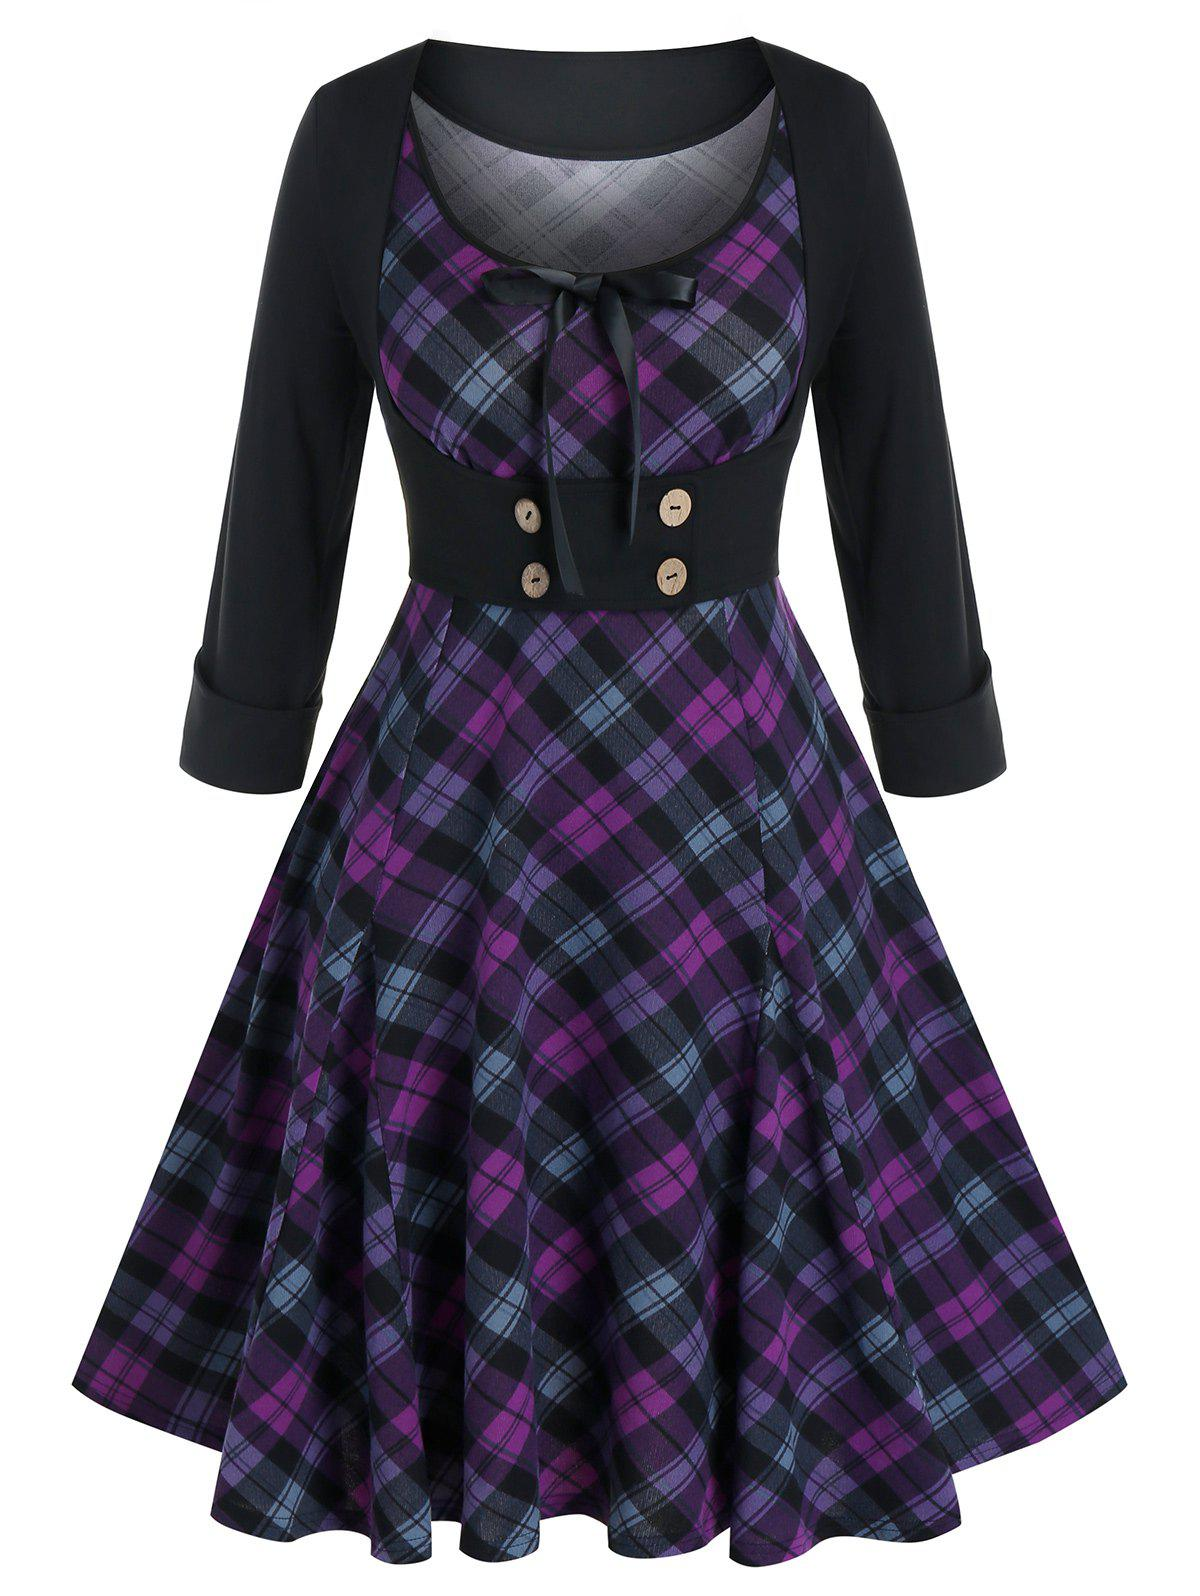 Plus Size Vintage Plaid Dress and Top Set - PURPLE IRIS 5X